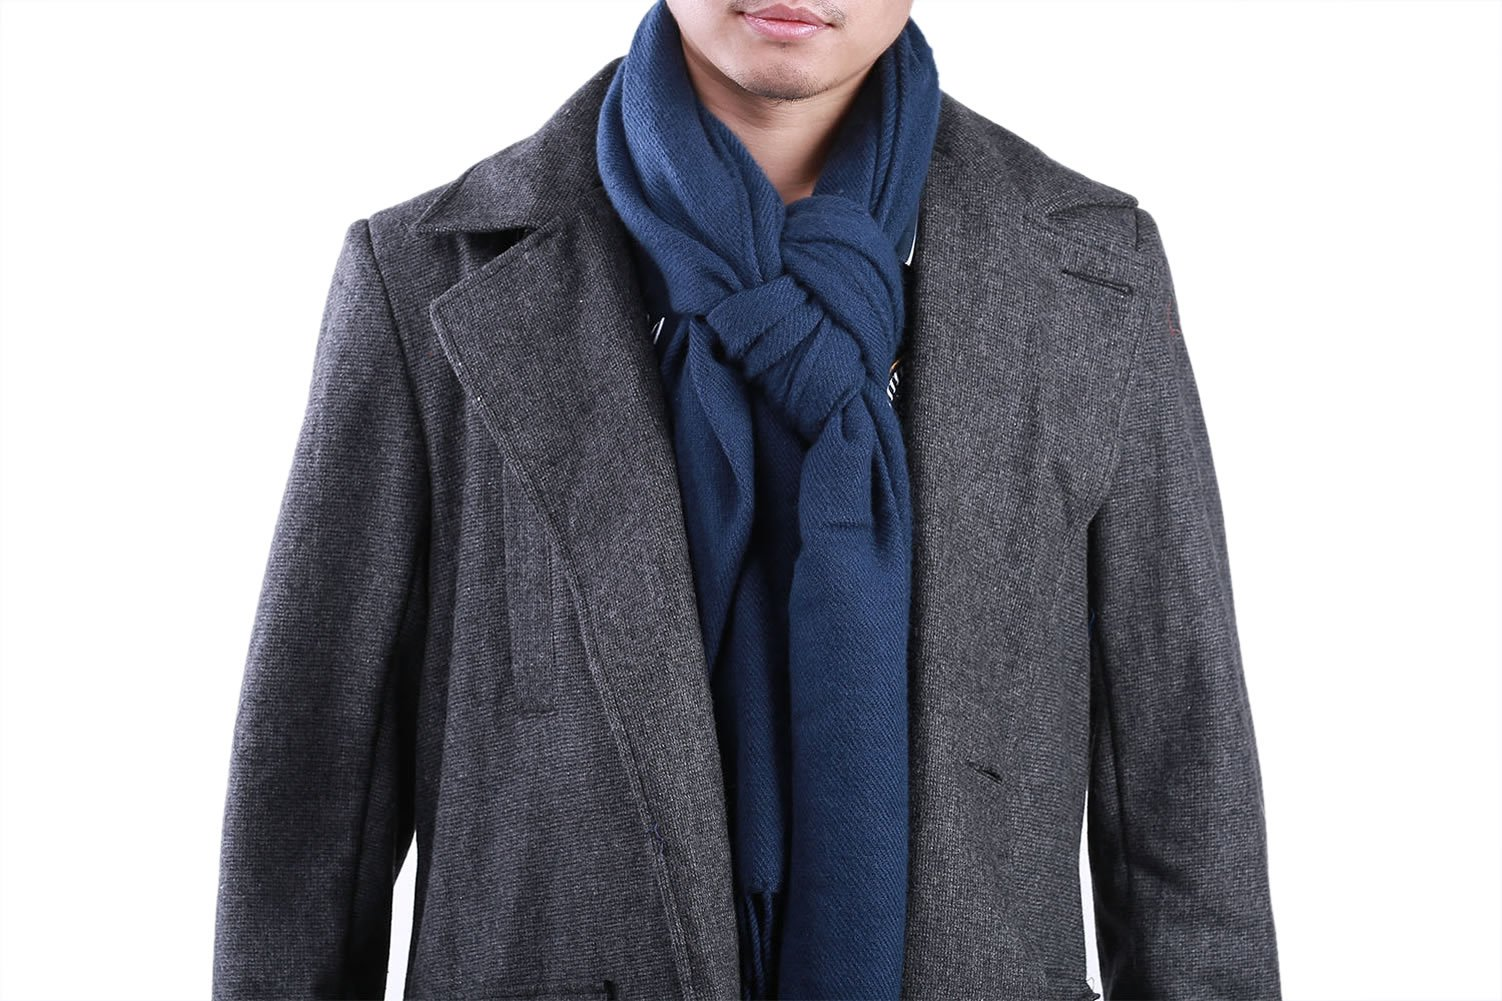 Sherlock Coat Woolen Trench Jacket Male Costume with Scarf M by Lightway (Image #2)